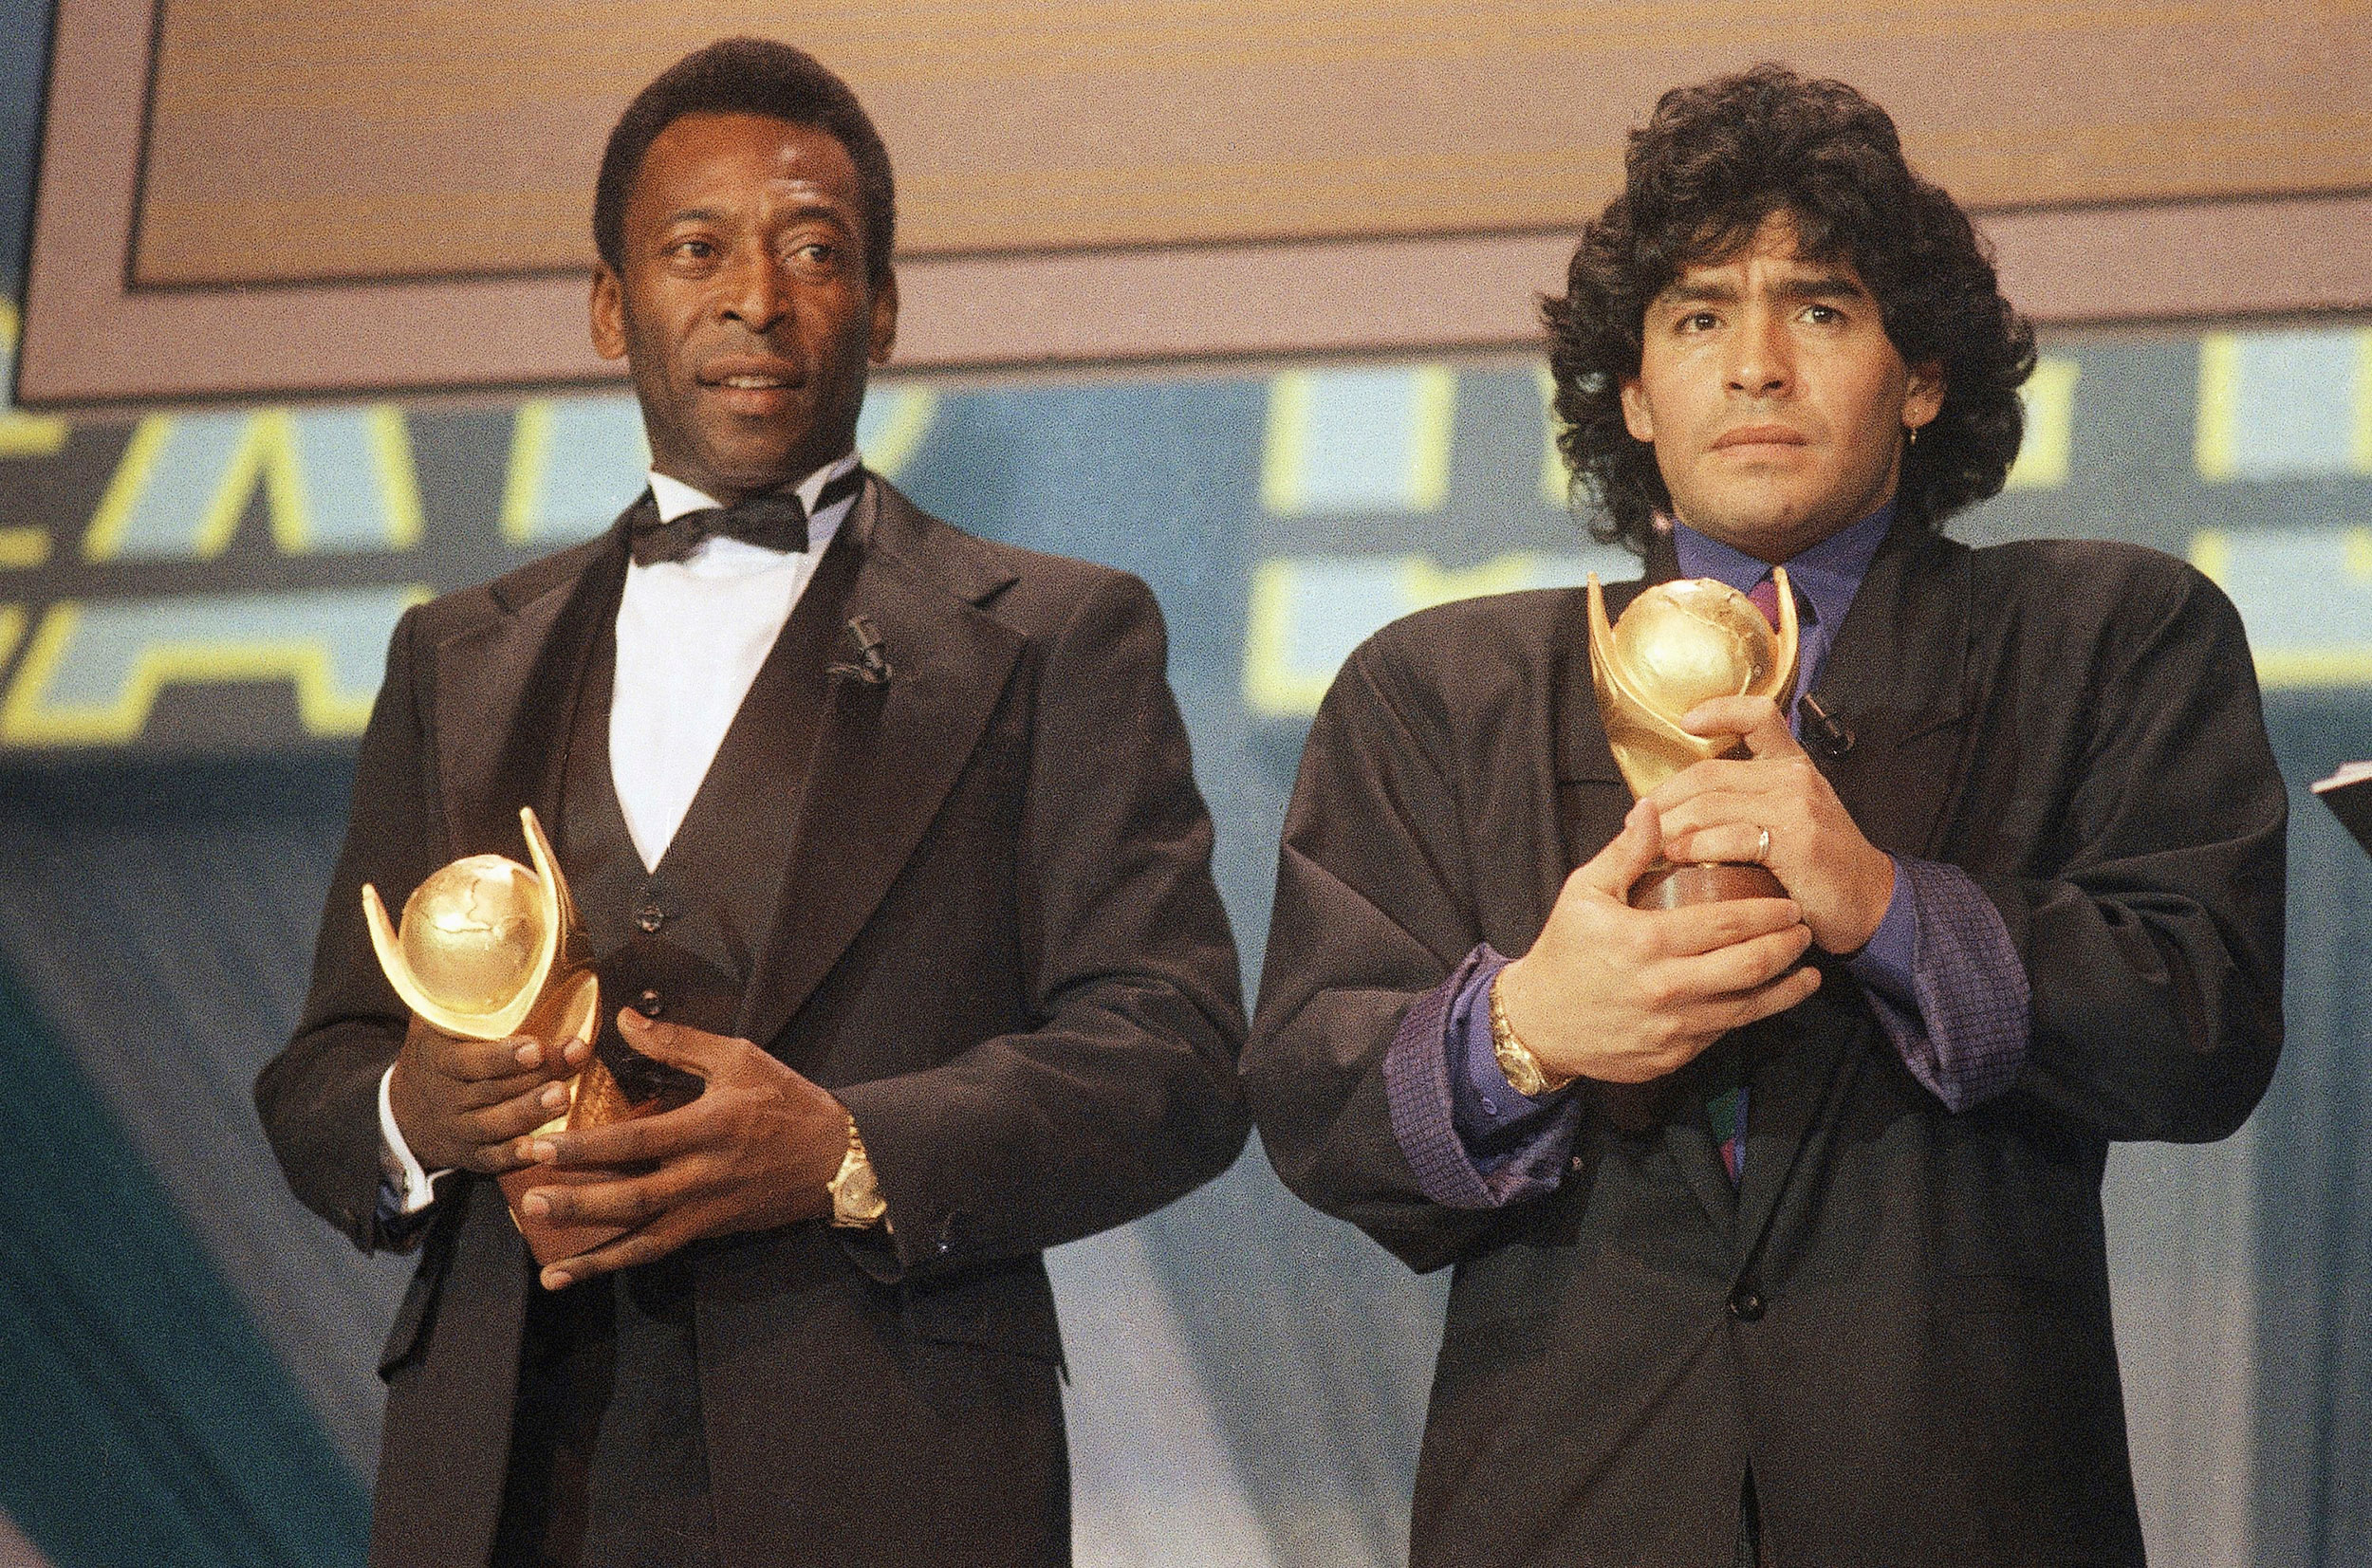 'We will play football together in heaven,' says Pele in tribute to Diego Maradona